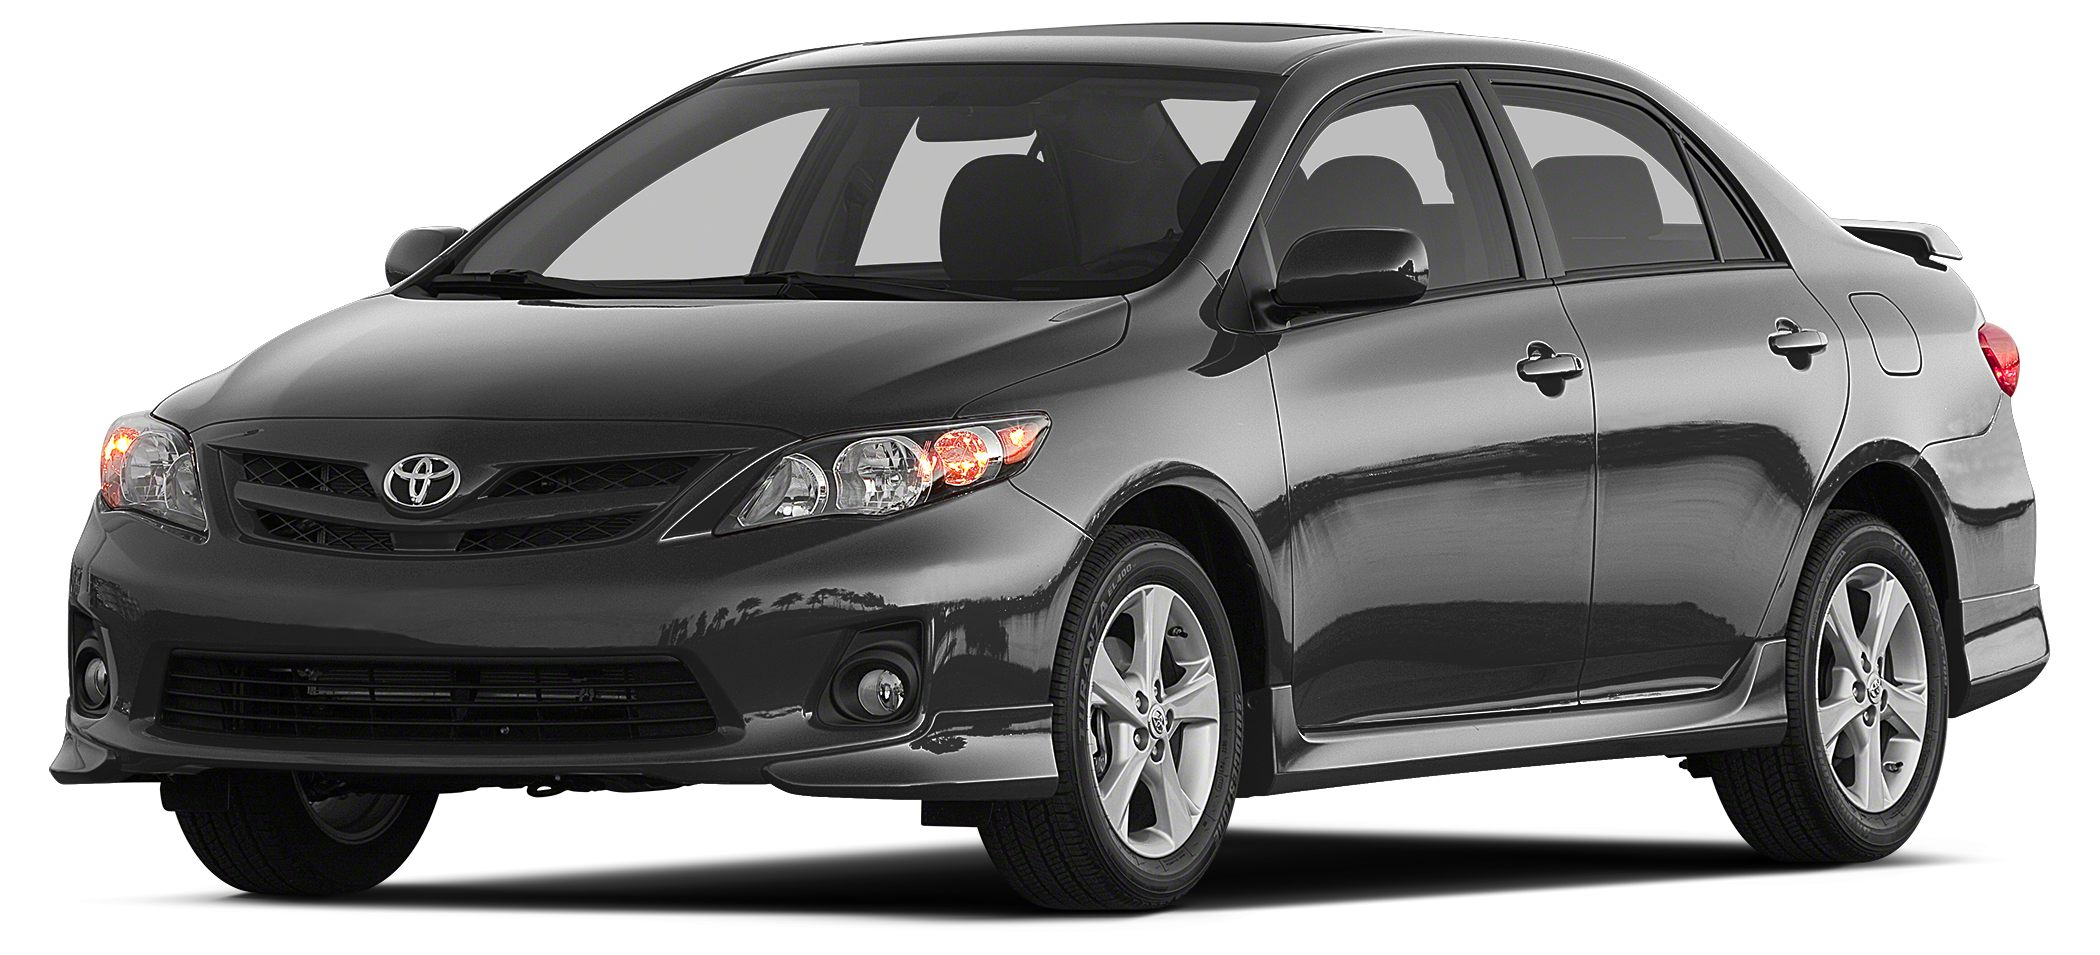 2013 Toyota Corolla S Westboro Toyota is proud to present HASSLE FREE BUYING EXPERIENCE with upfro